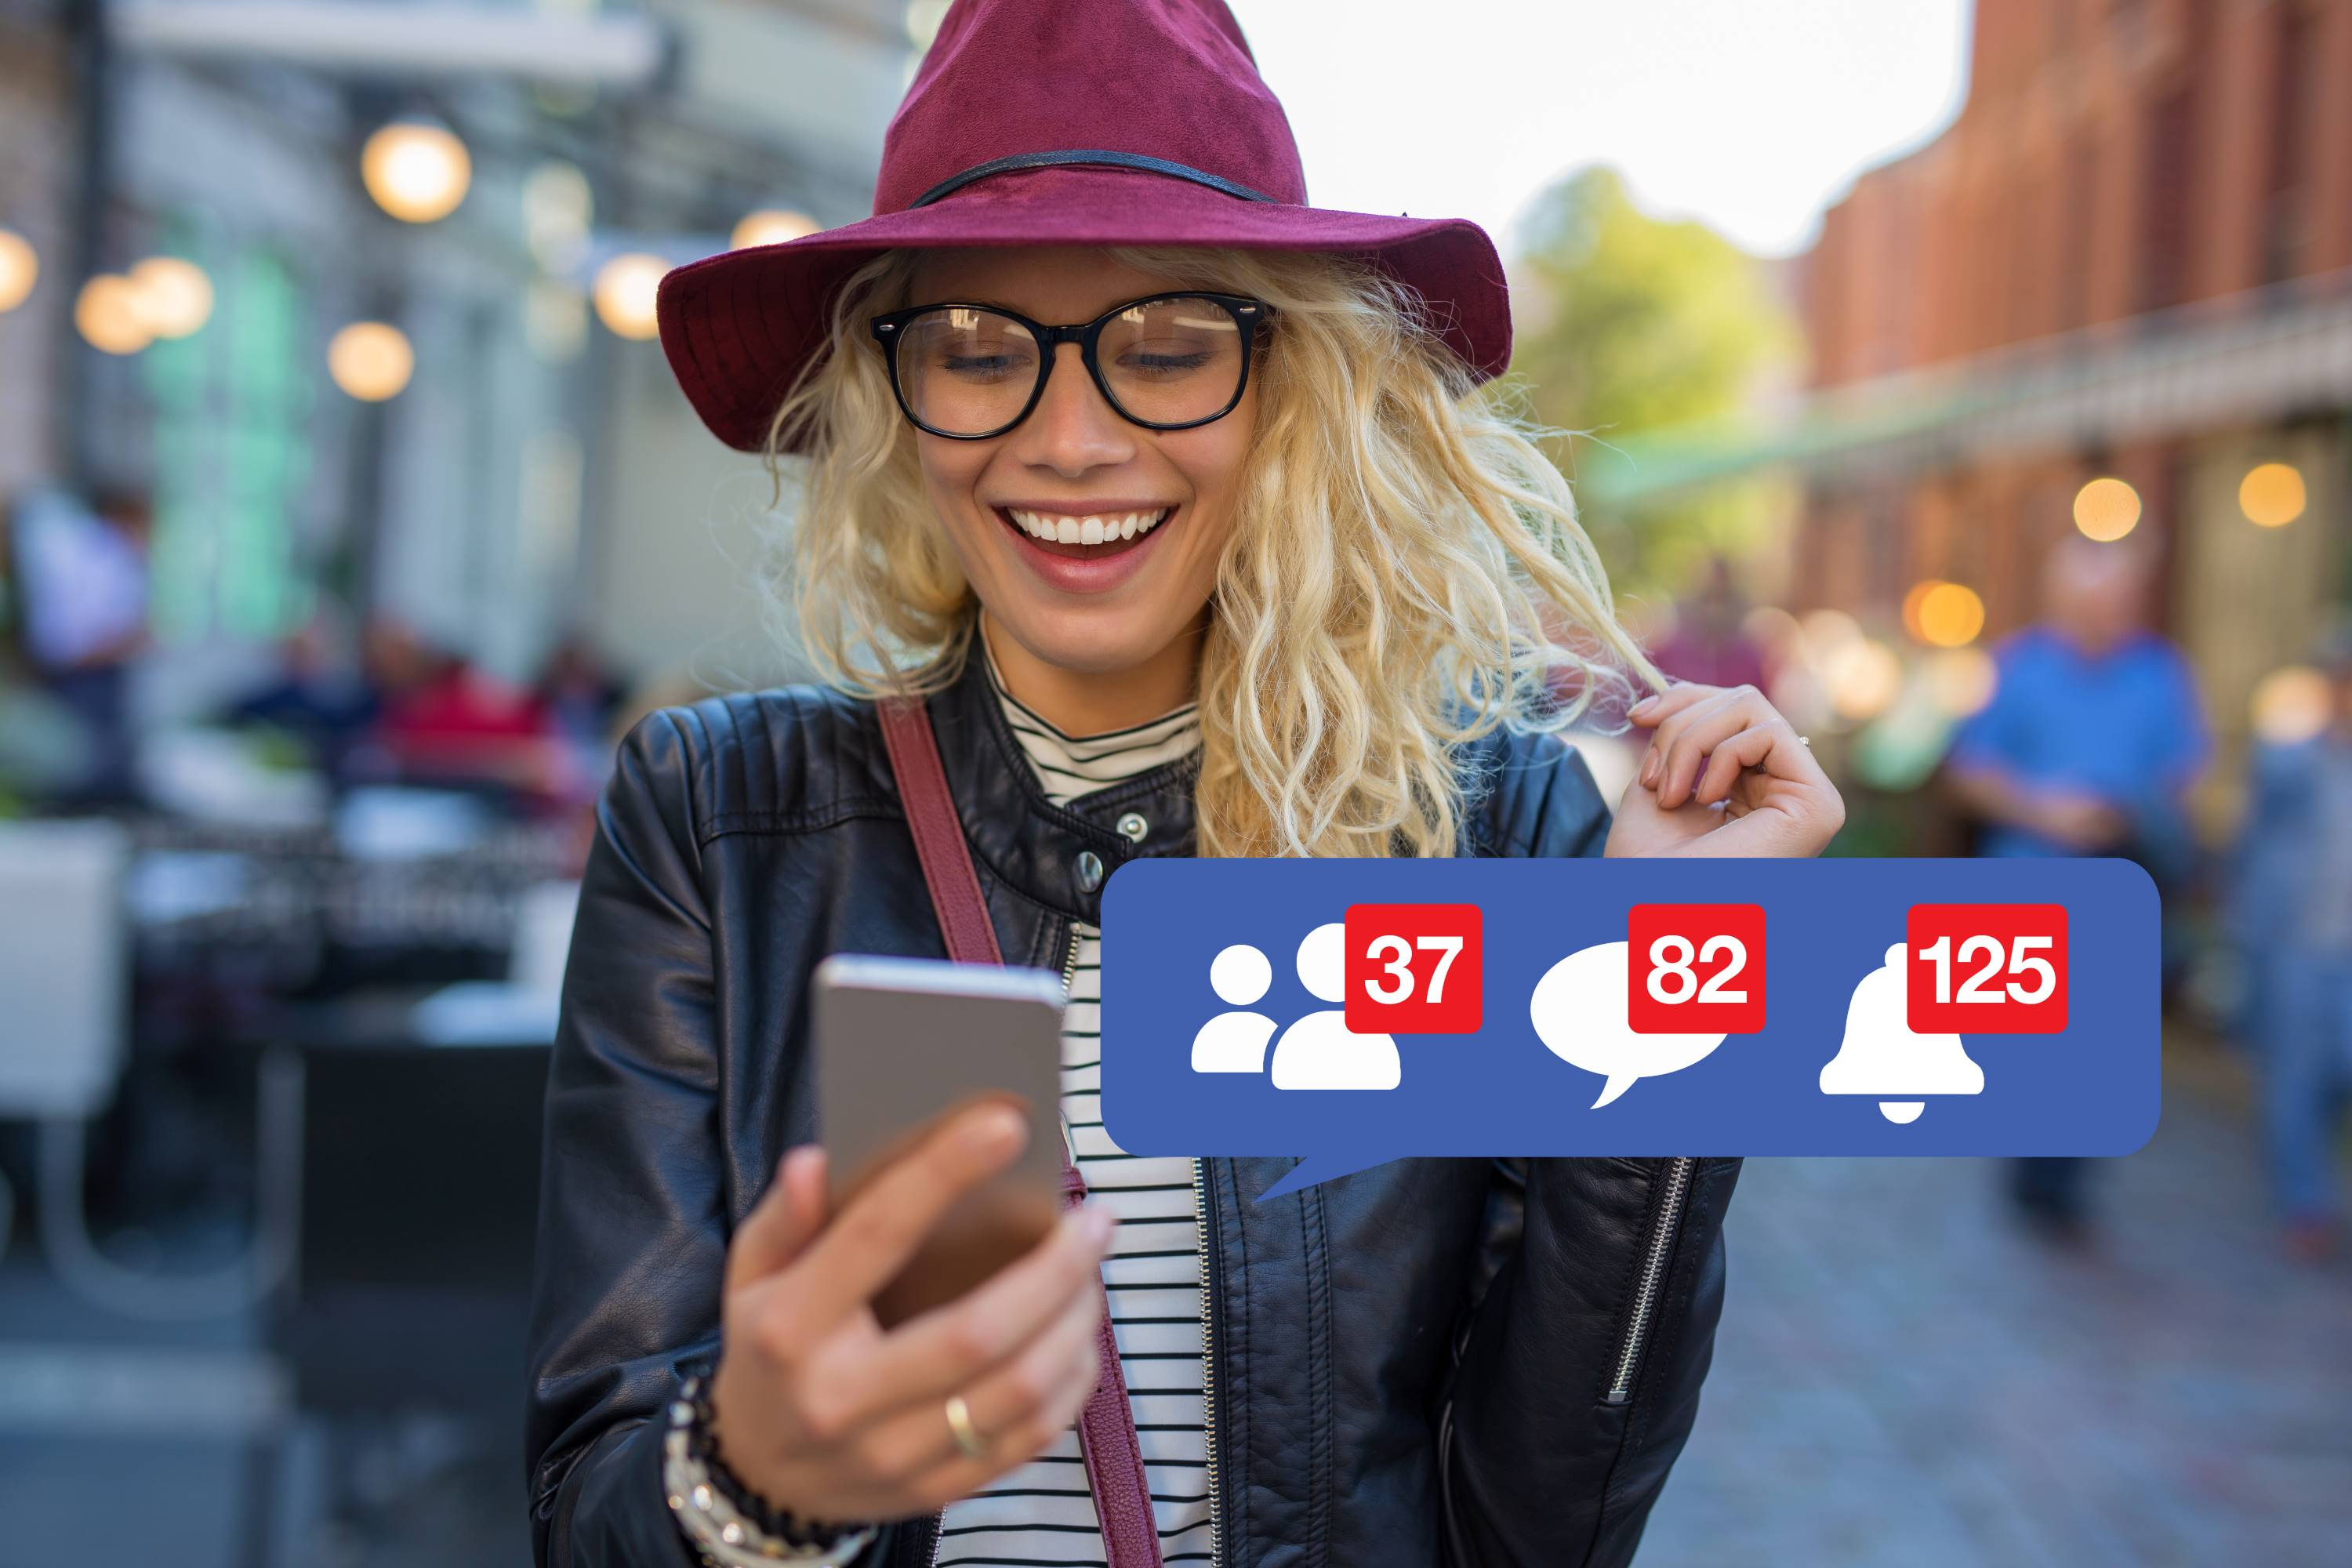 The Definitive Guide to Marketing on Facebook for Small Businesses